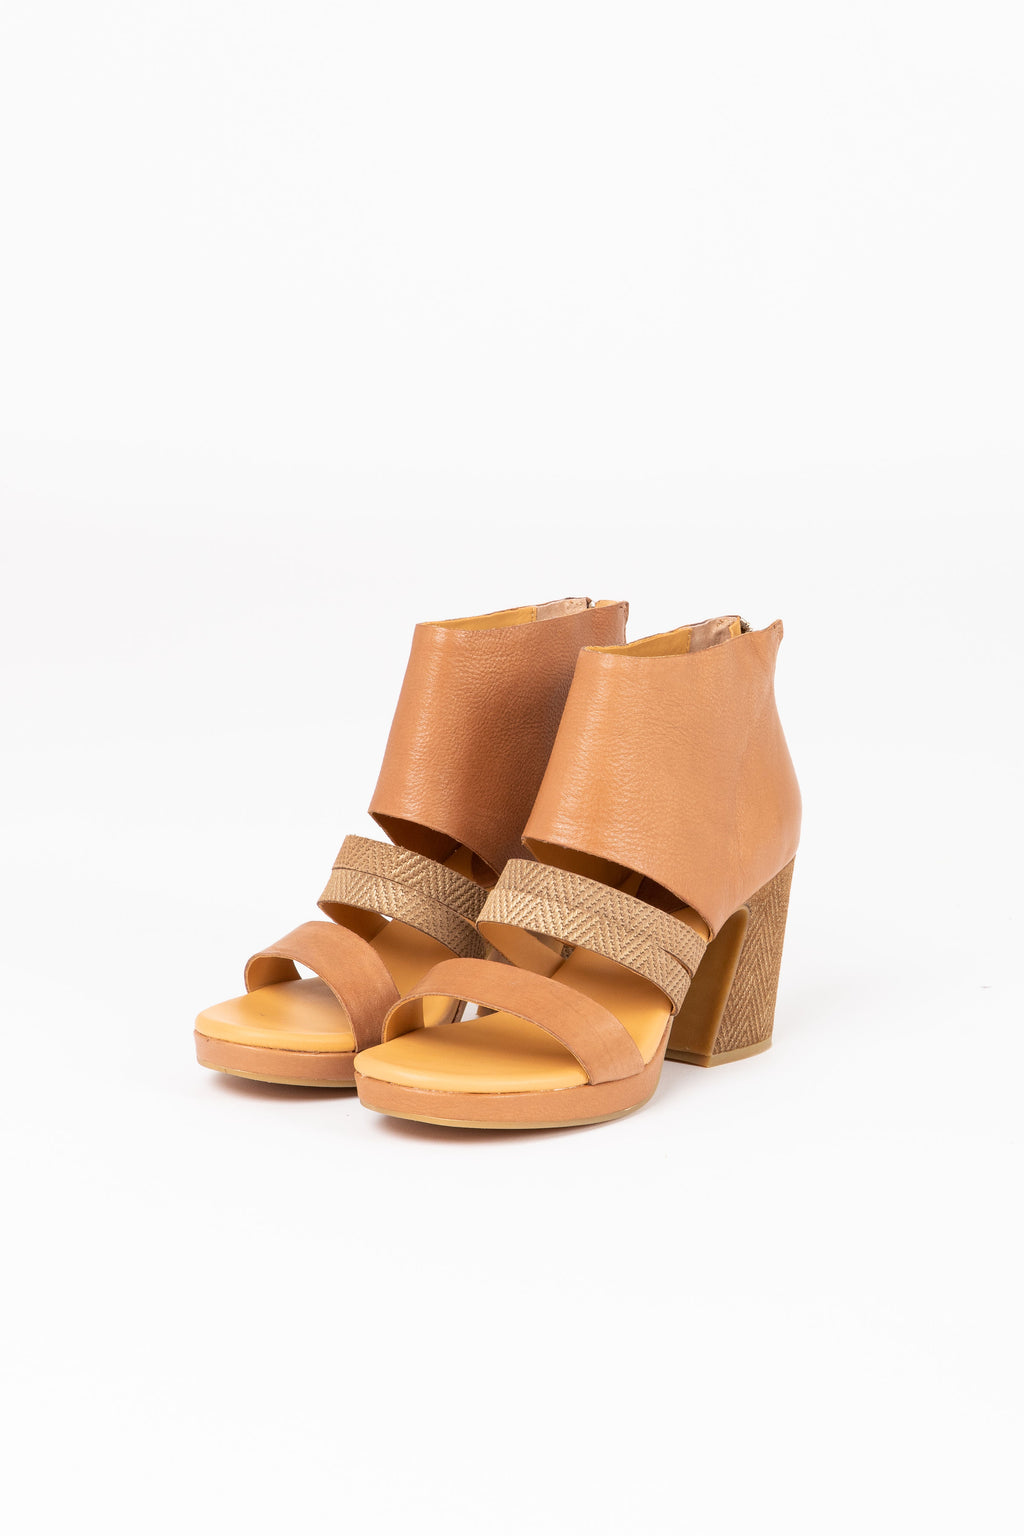 Kork-Ease: Hickland Heel in Brown